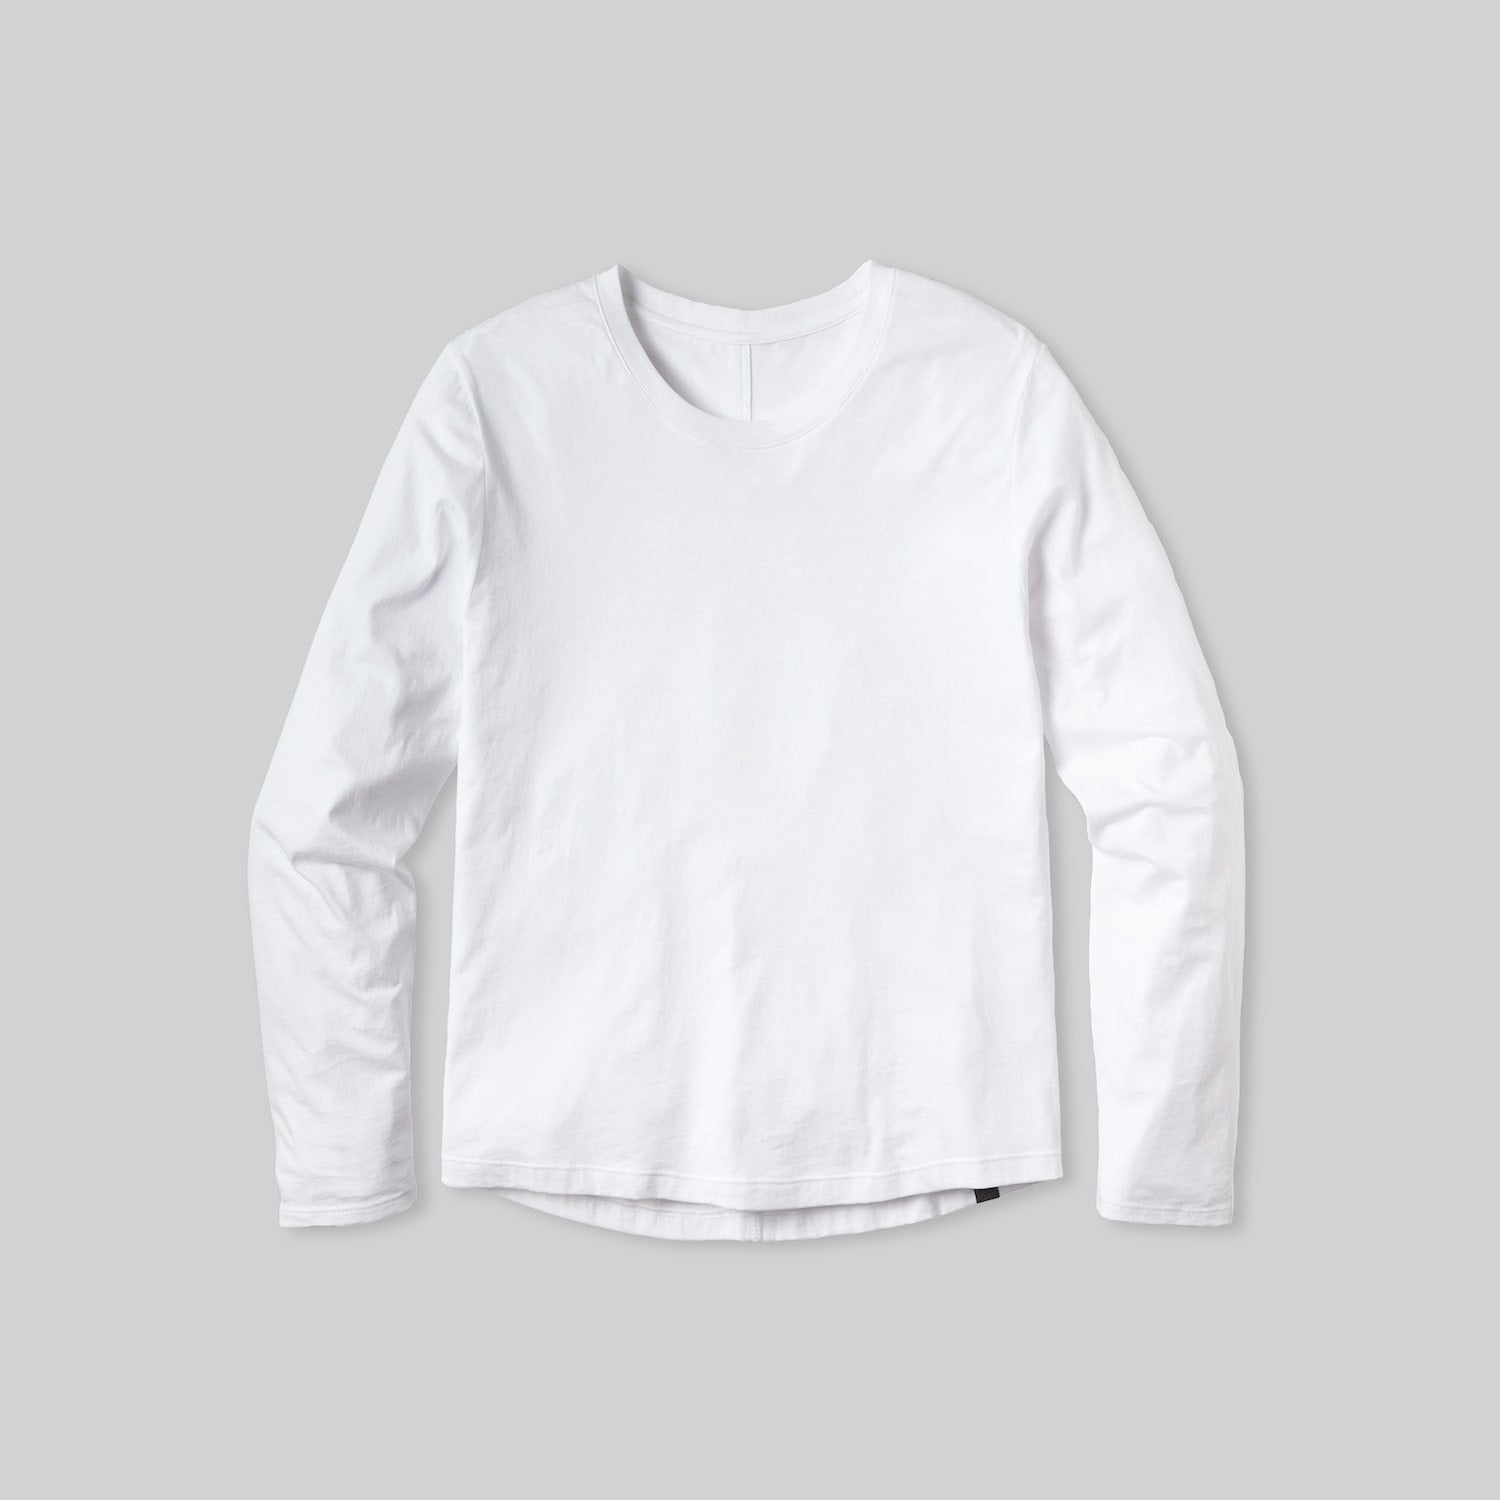 Lahgo Sleepwear Organic Long Sleeve Tee - #White